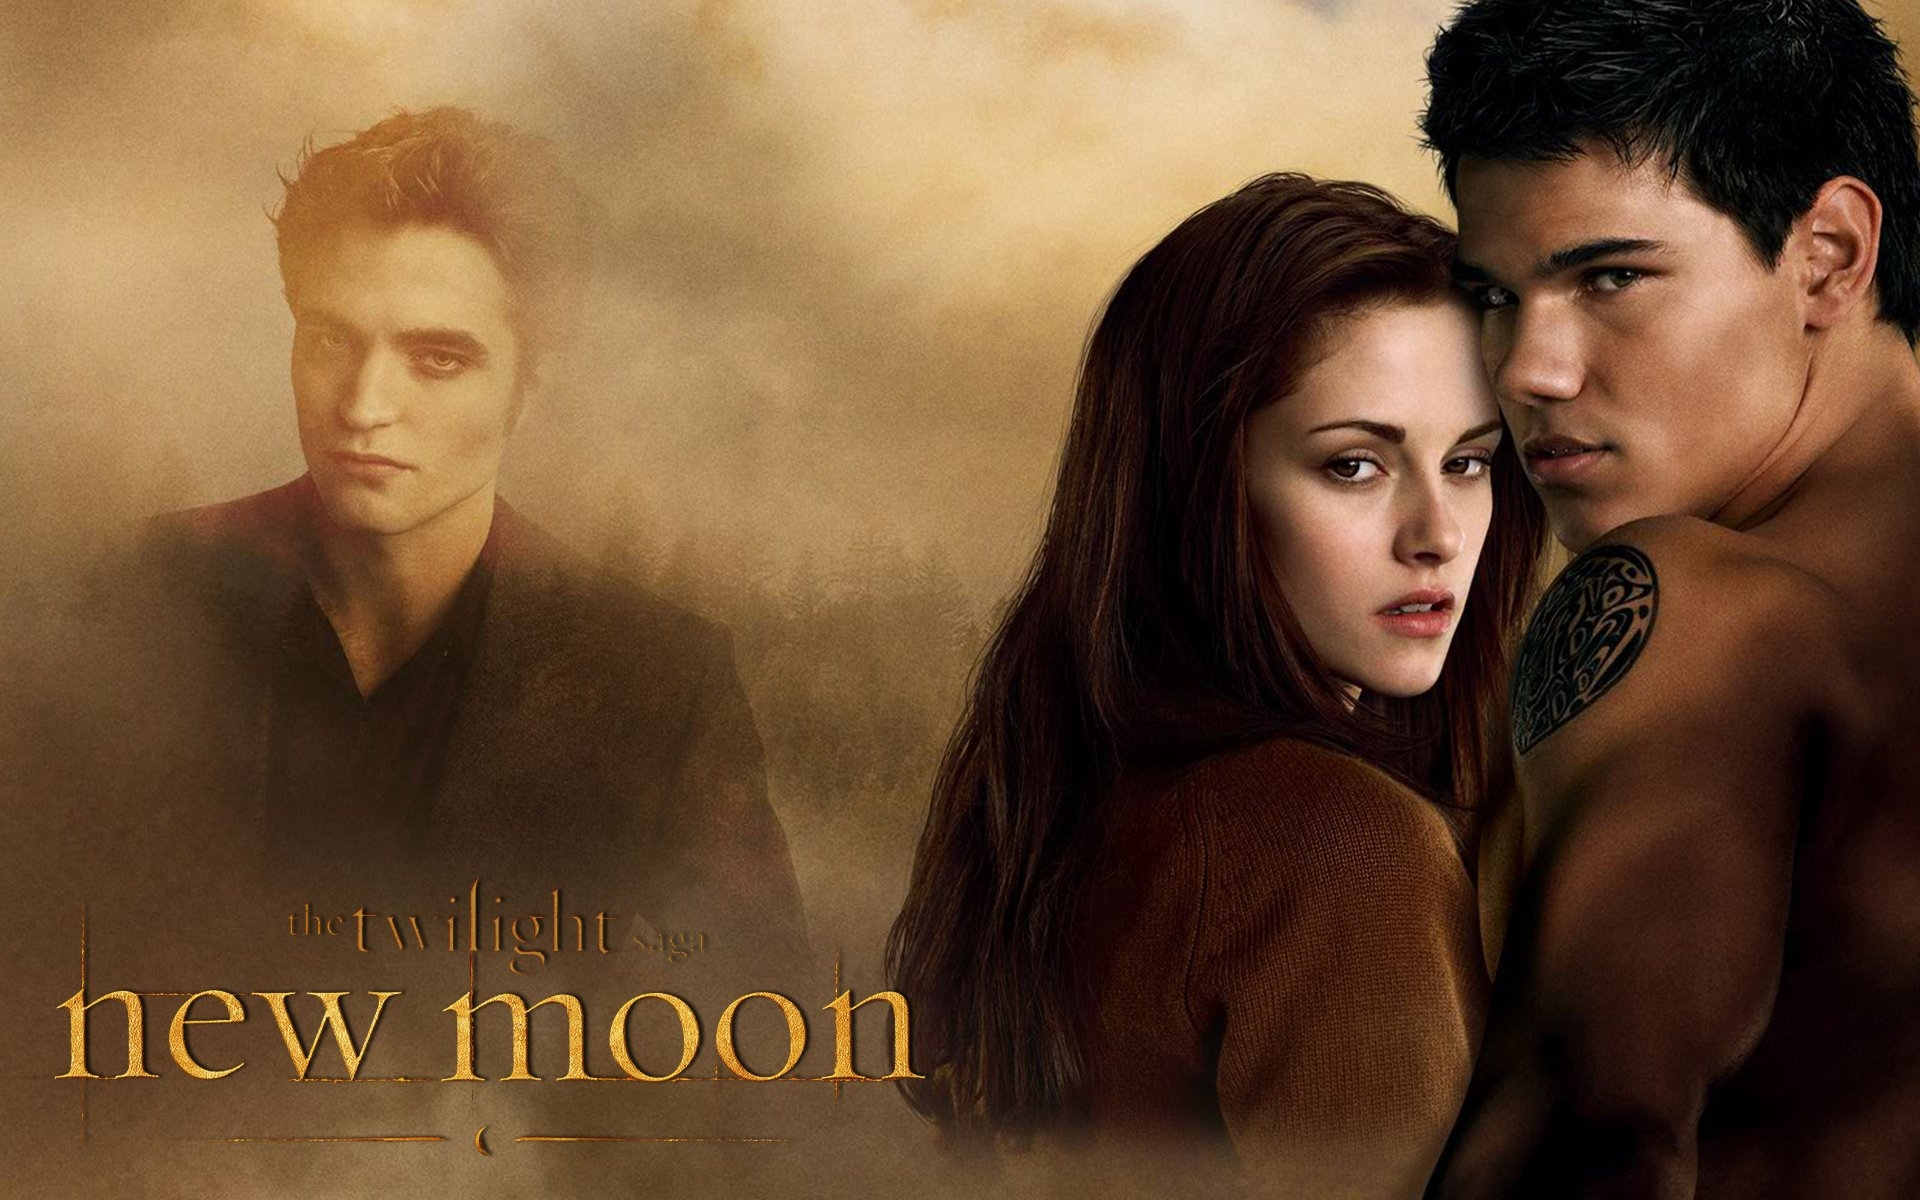 edward-bella-and-jacon-wallpaper-twilight-series-7250148-1920-1200 - сумреки обои